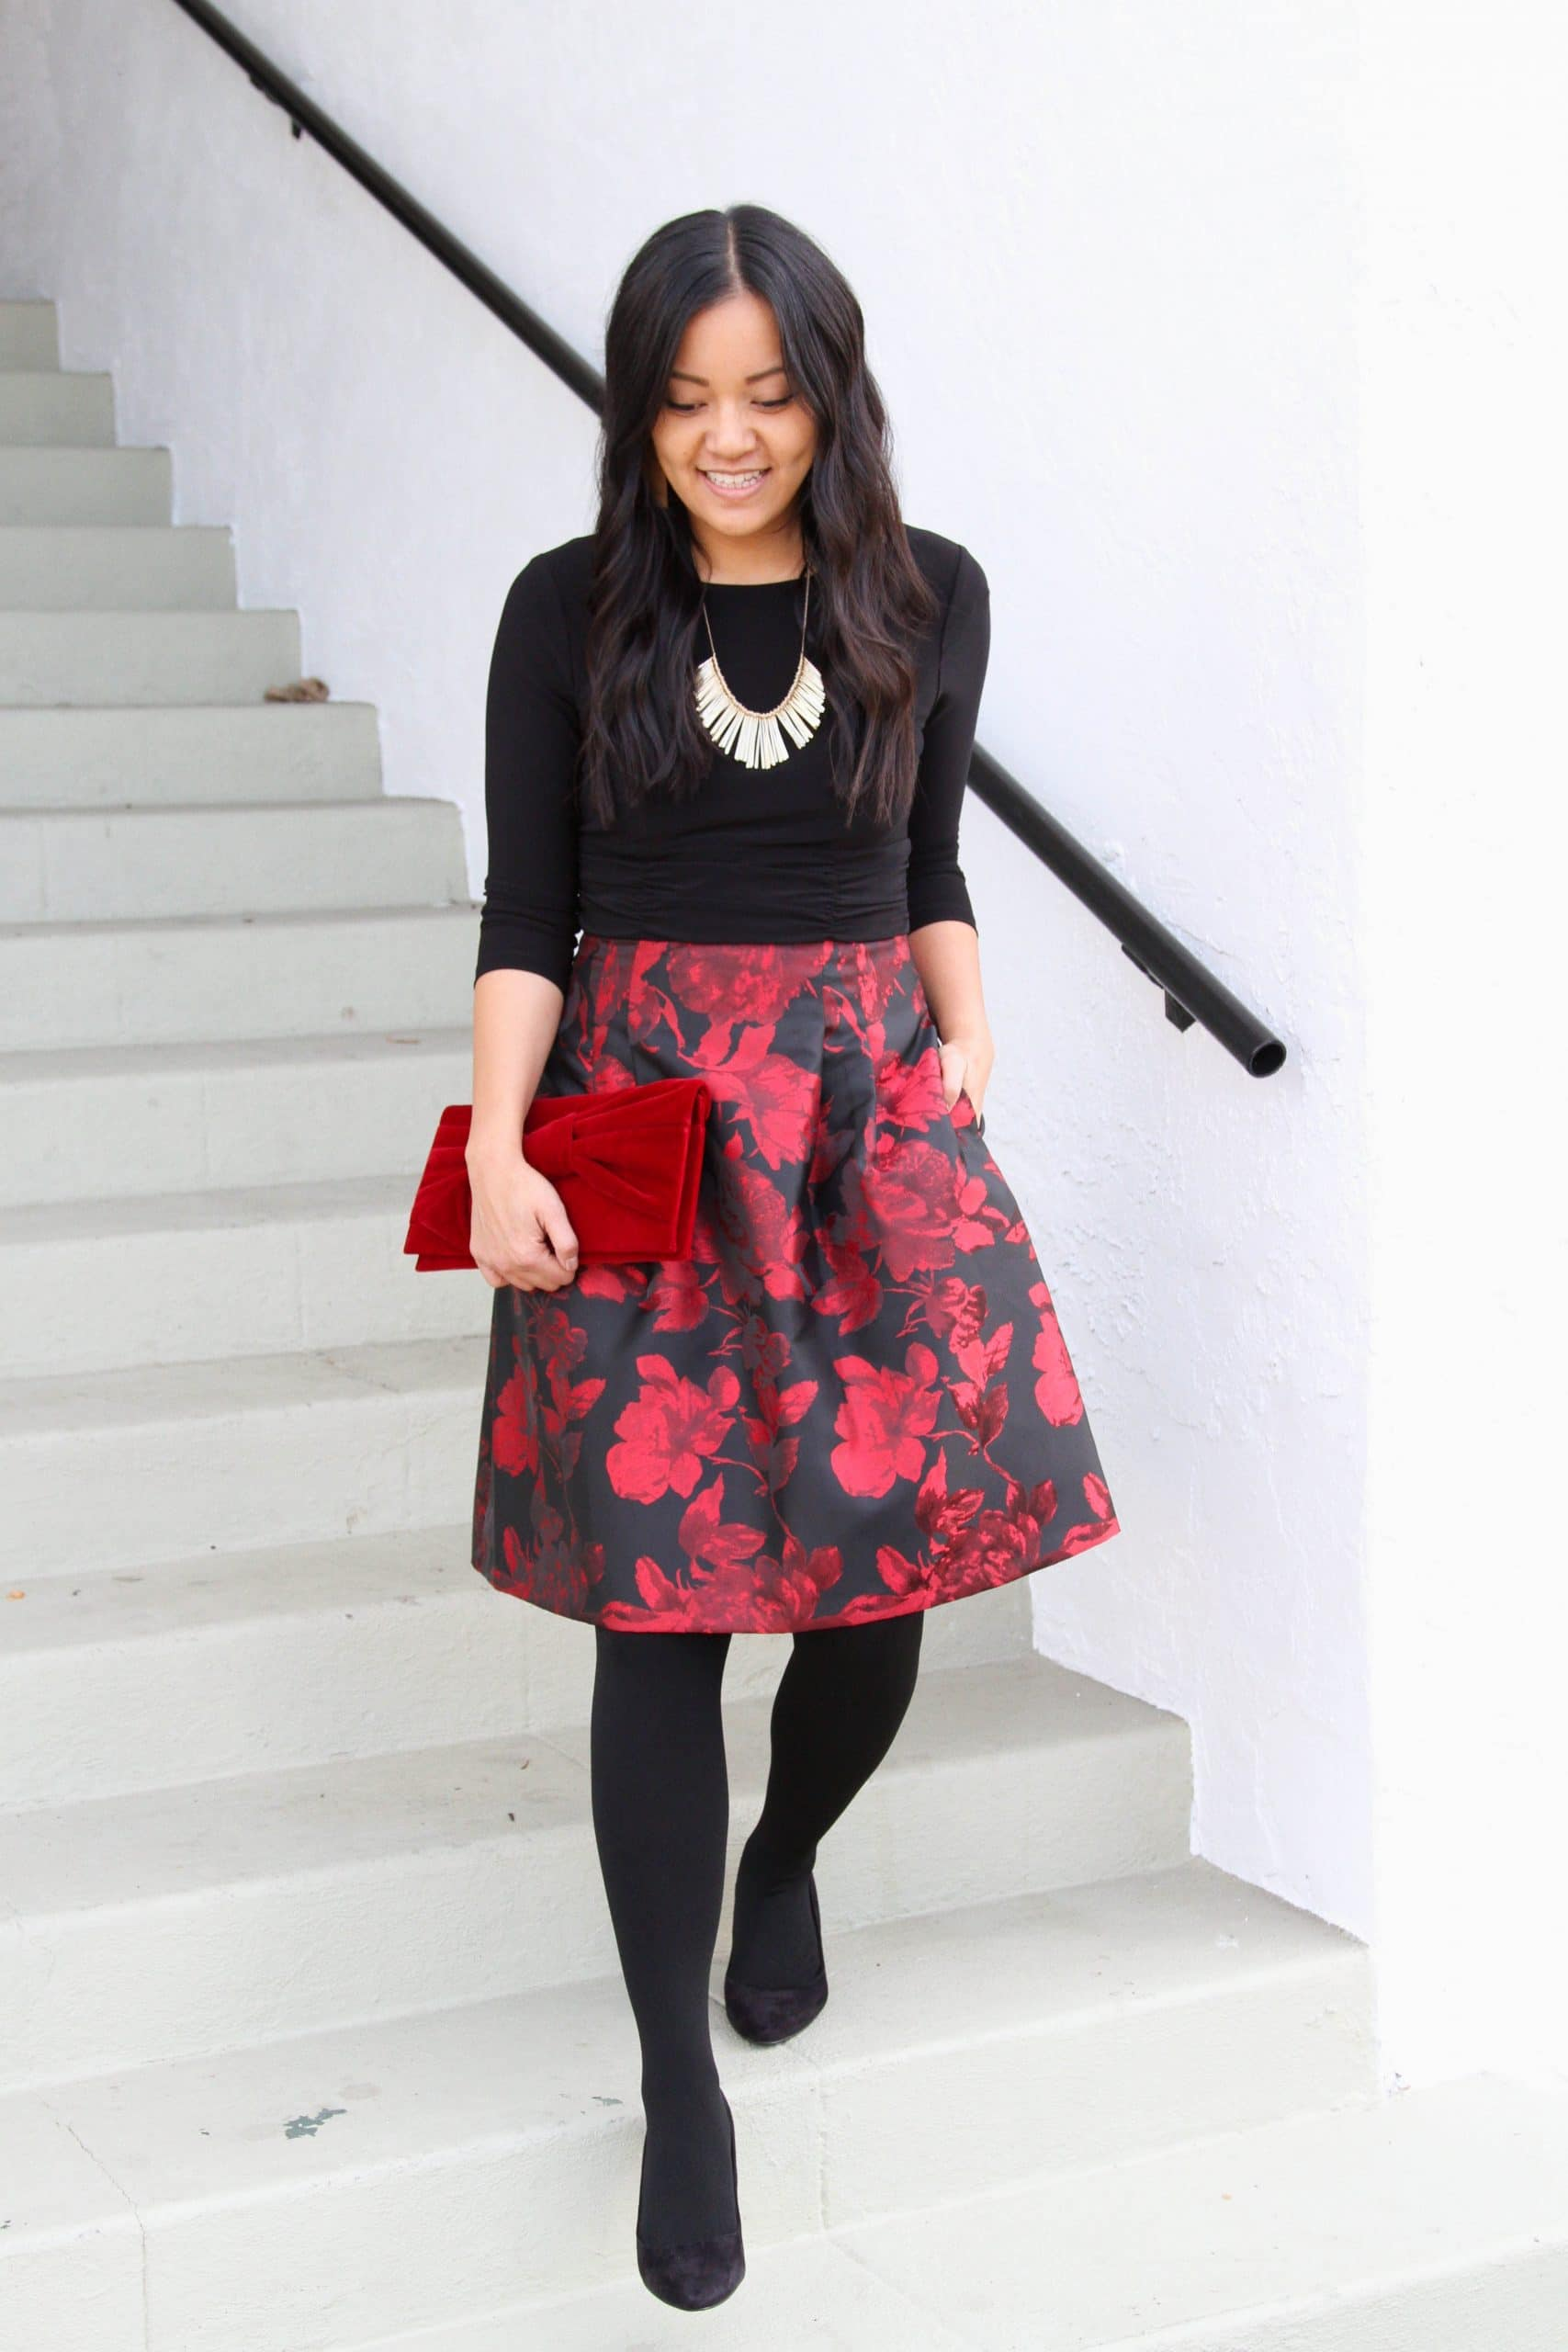 black tights + red and black floral dress + black flats